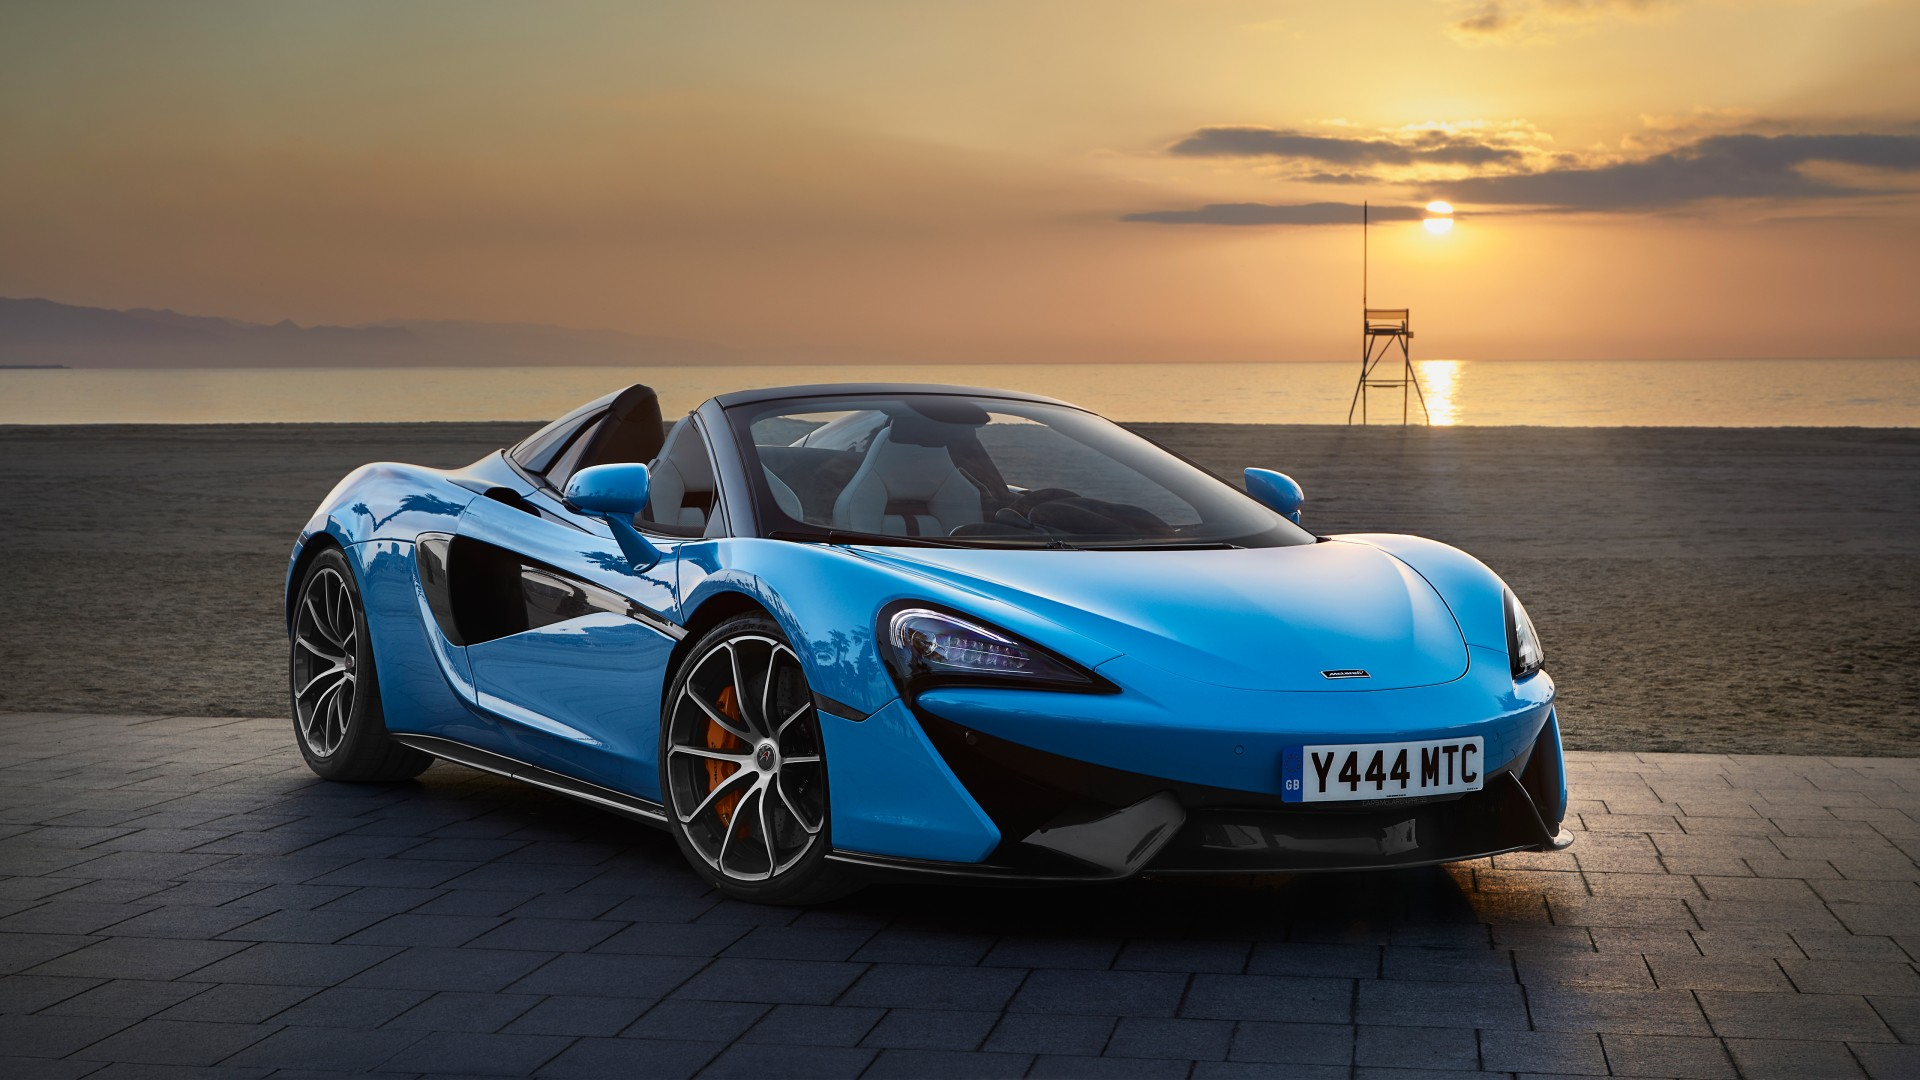 McLaren 570S Spider 2018 5K Wallpaper | HD Car Wallpapers ...